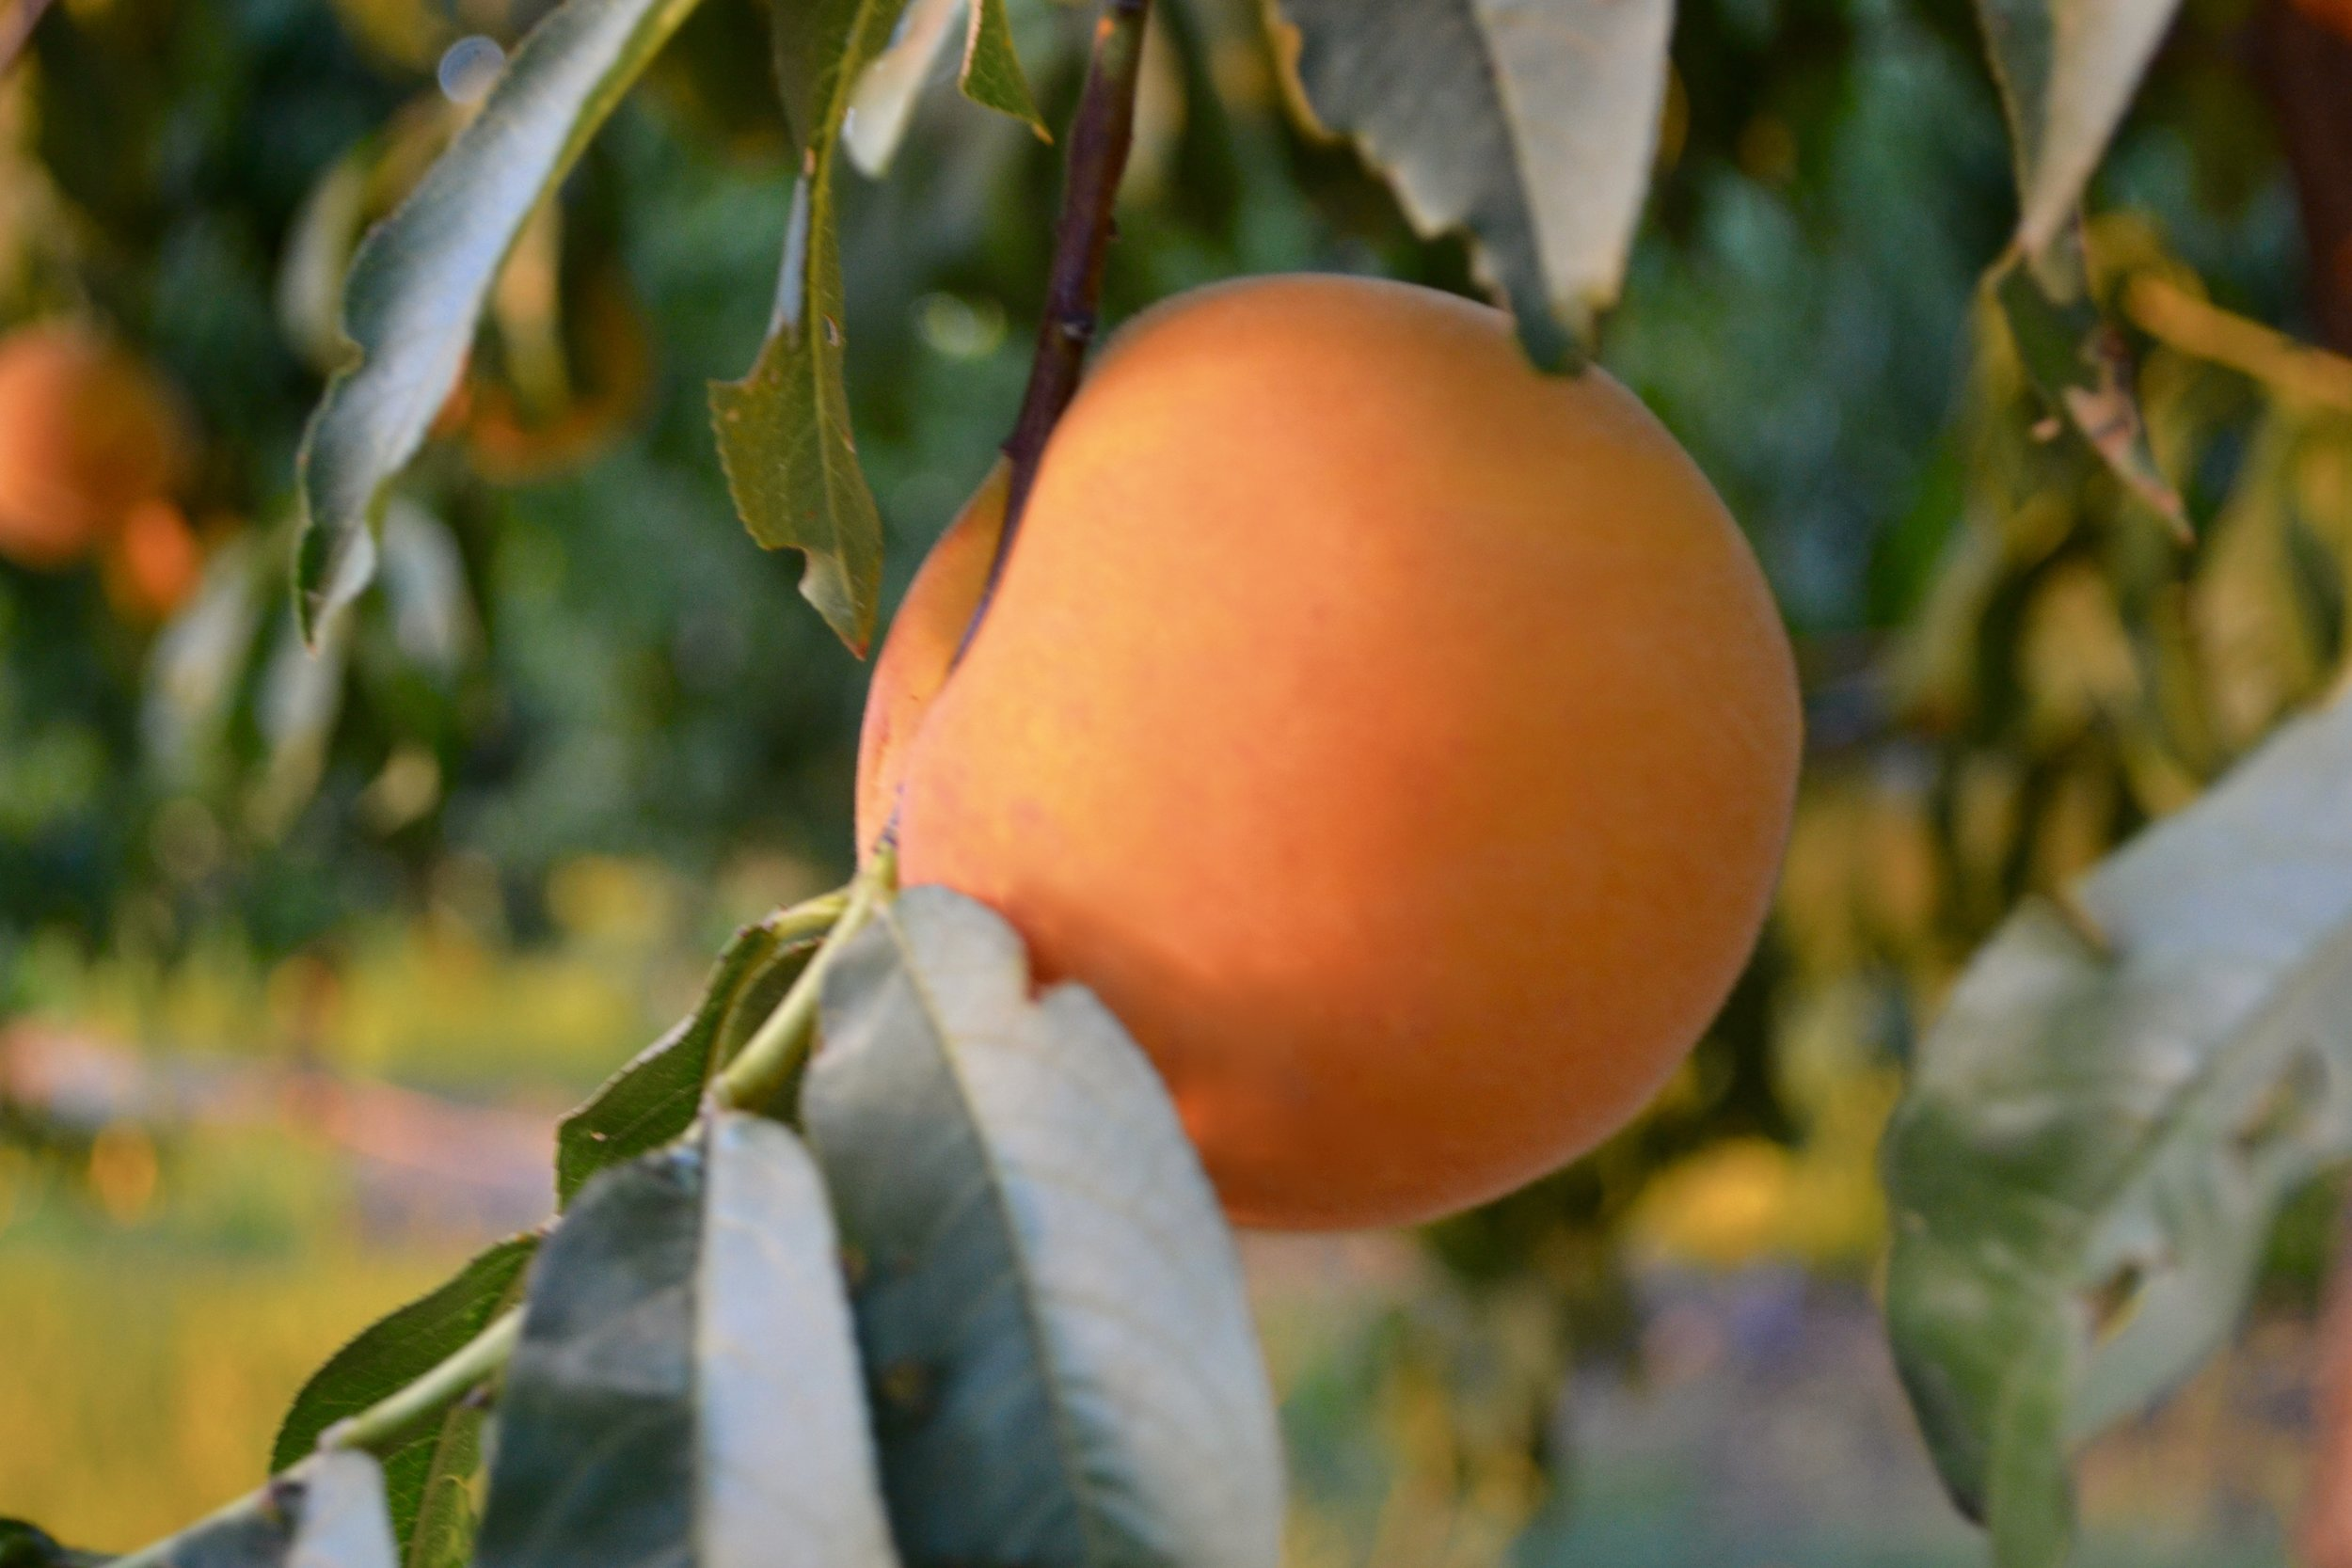 "P E A C H: The Watkins farm grows cling peaches. Cling peaches were named because characteristics of the fruit cause the flesh to stick to or ""cling"" the stone. Cling peaches are used for canning because they are firmer compared to freestones which are sold as a fresh market product."